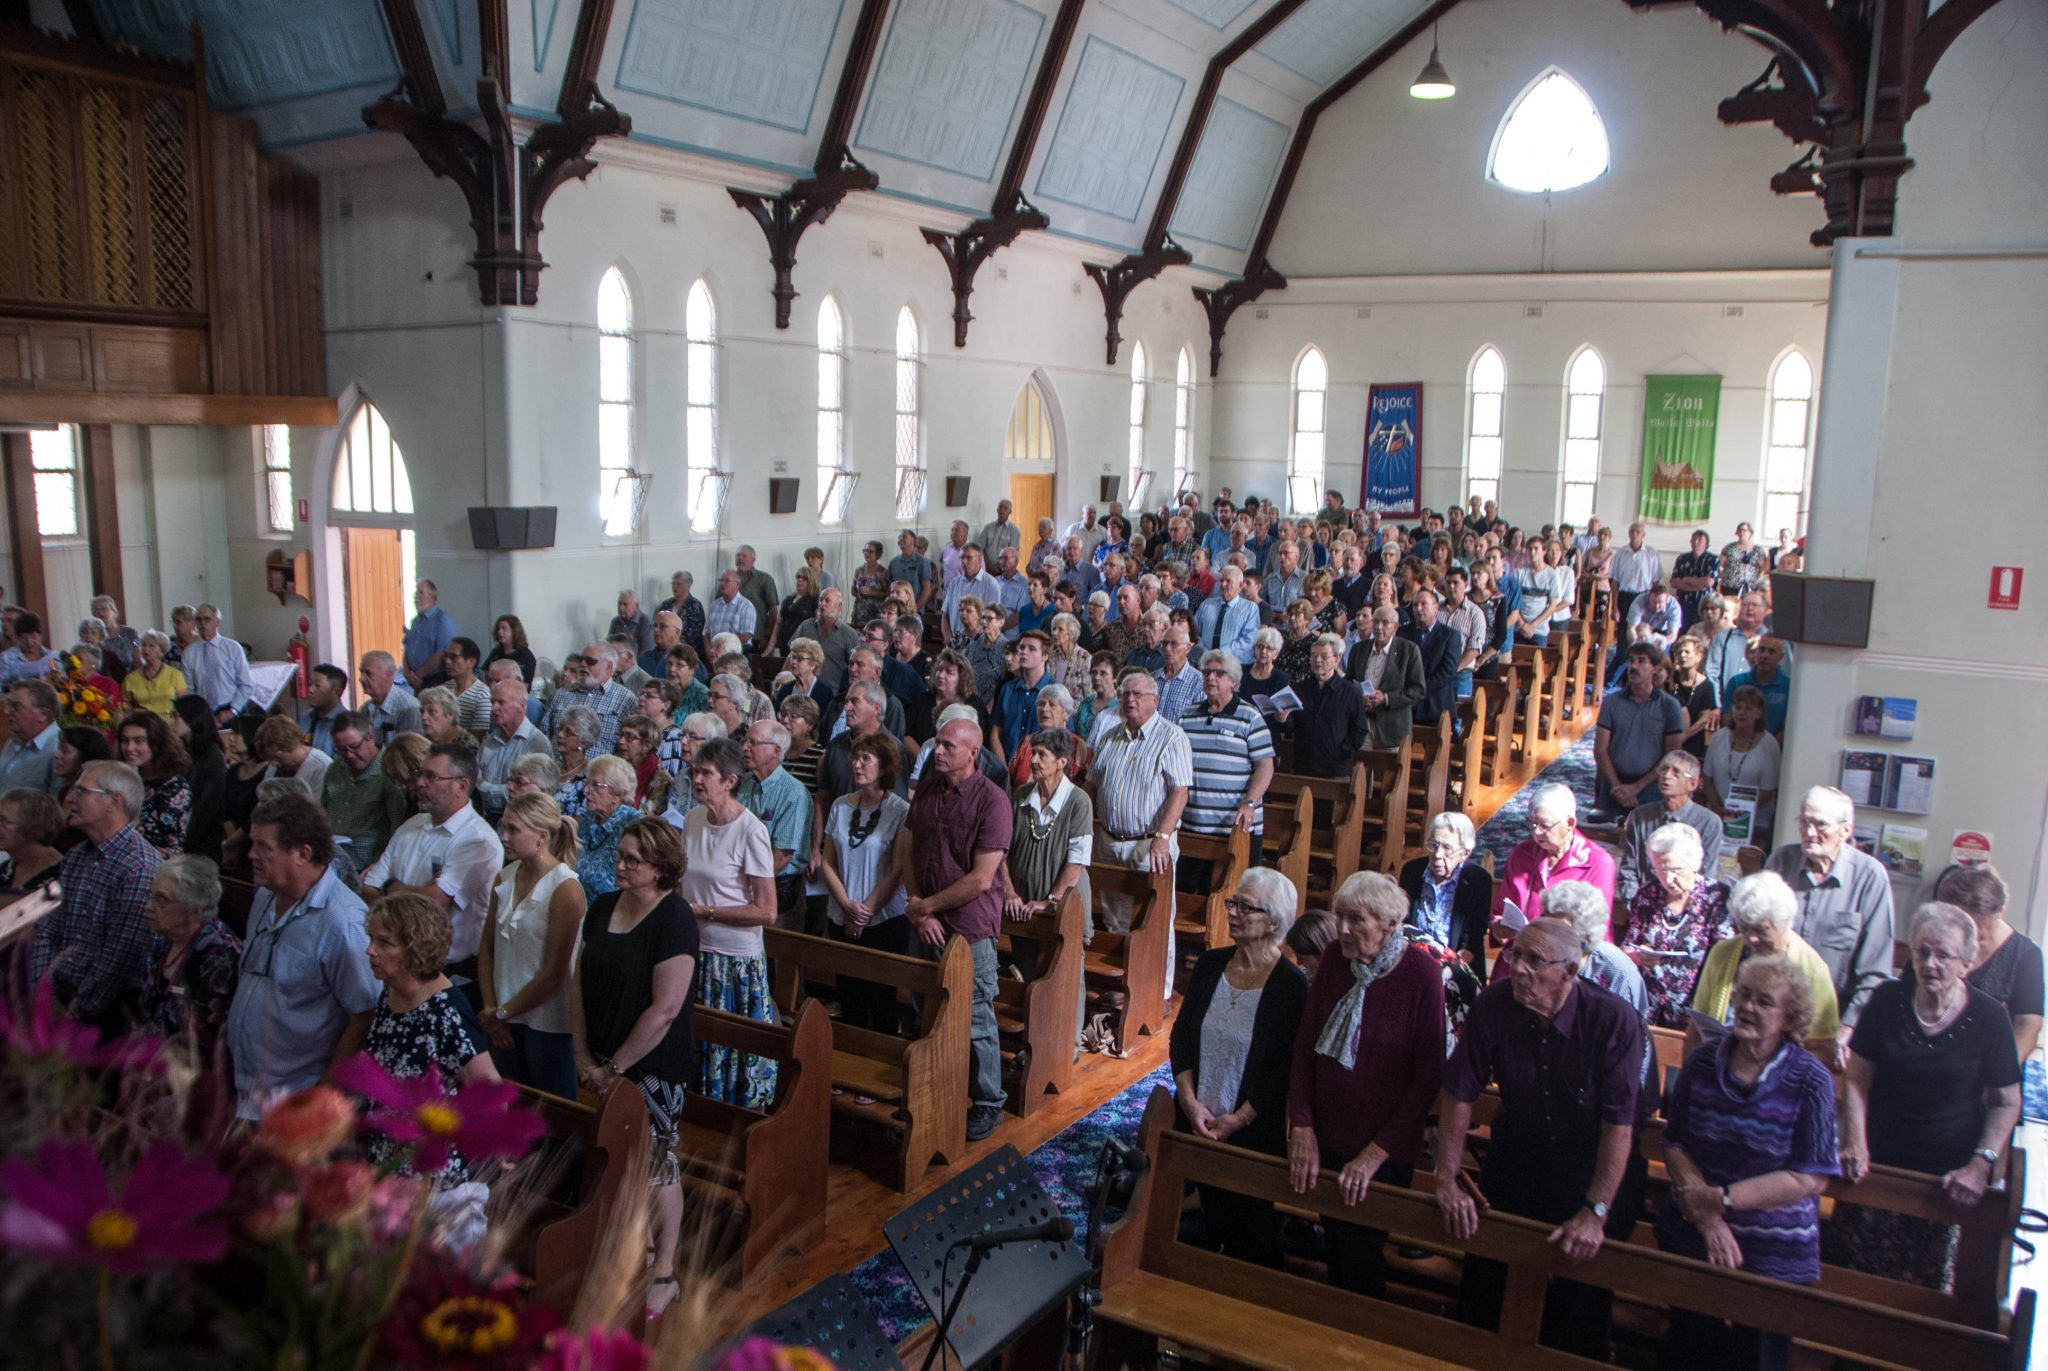 Zion 150th celebration (March 2019)